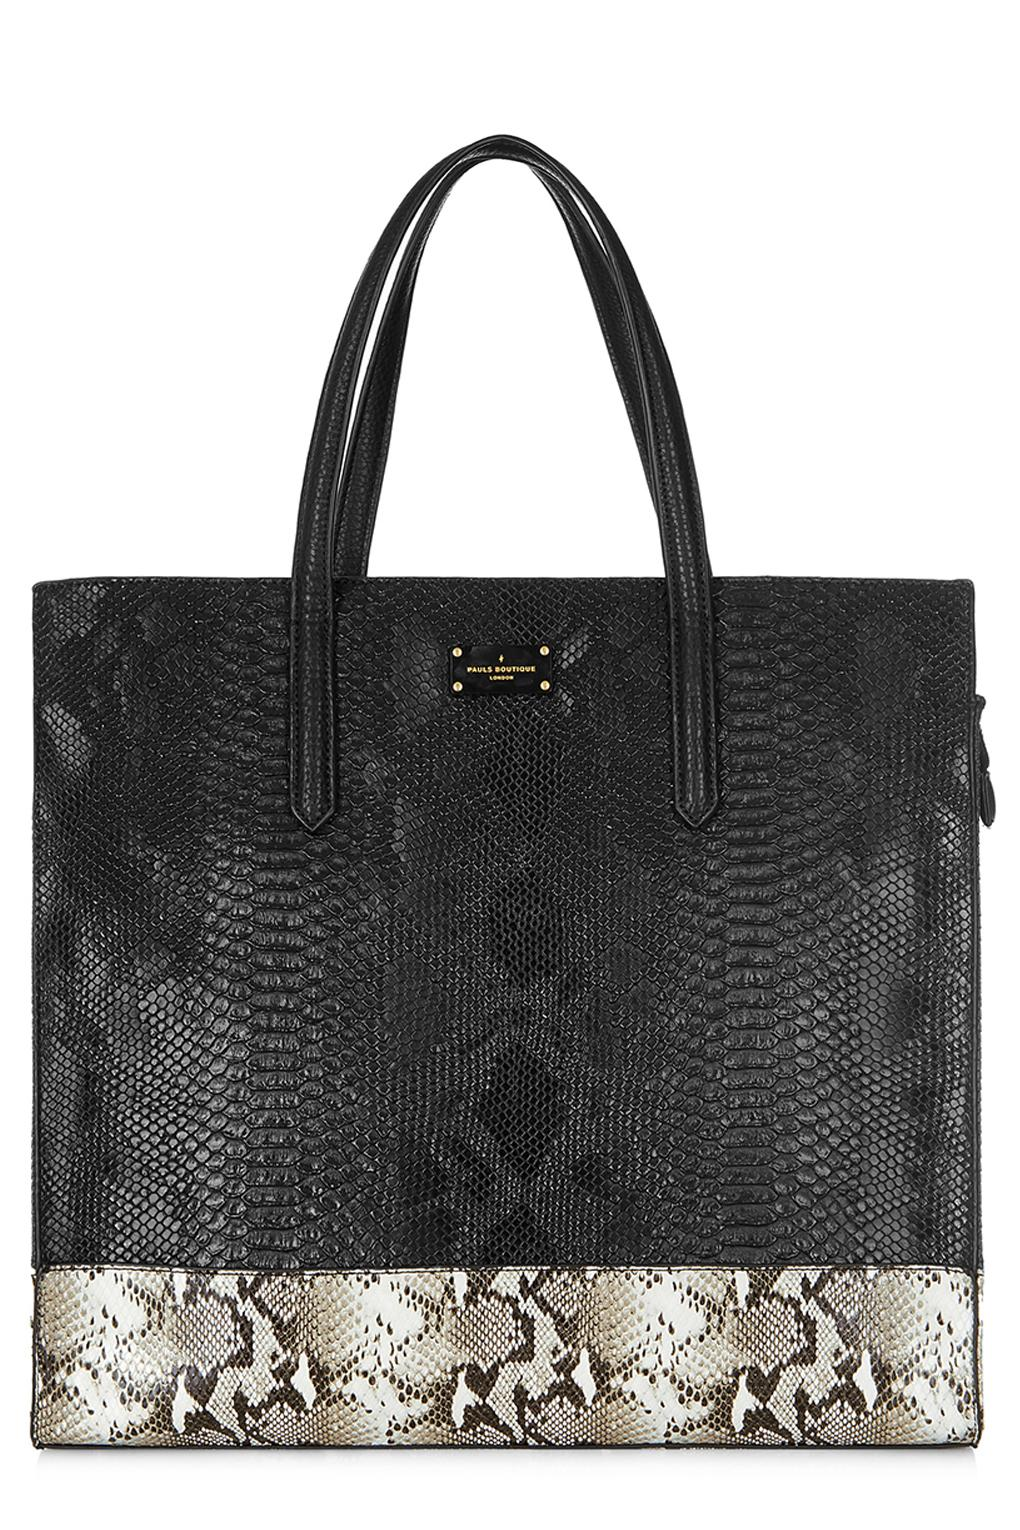 Black Tote Bag Maxwell Grey Snake Print